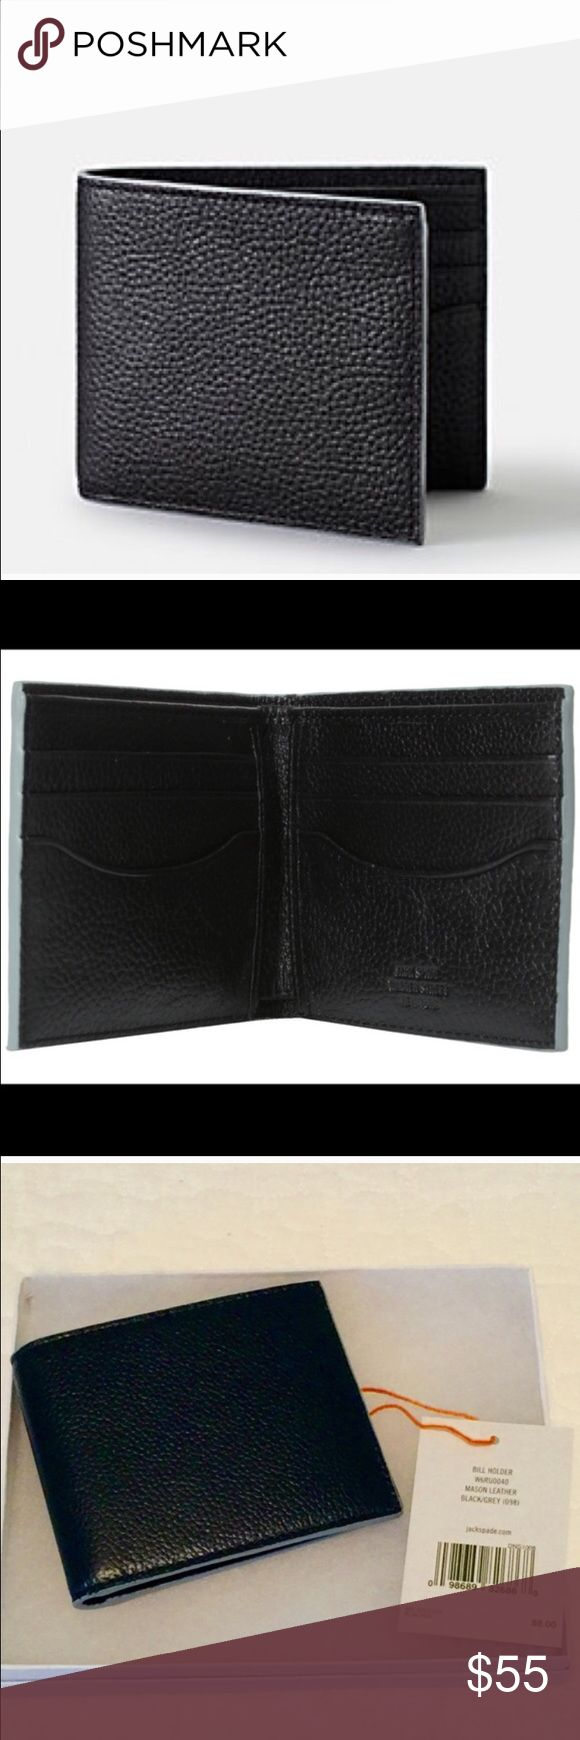 Jack Spade Mason Wallet New with tags and gift box. Black waxed leather with gray trim. Perfect gift for the holidays. Jack Spade Bags Wallets